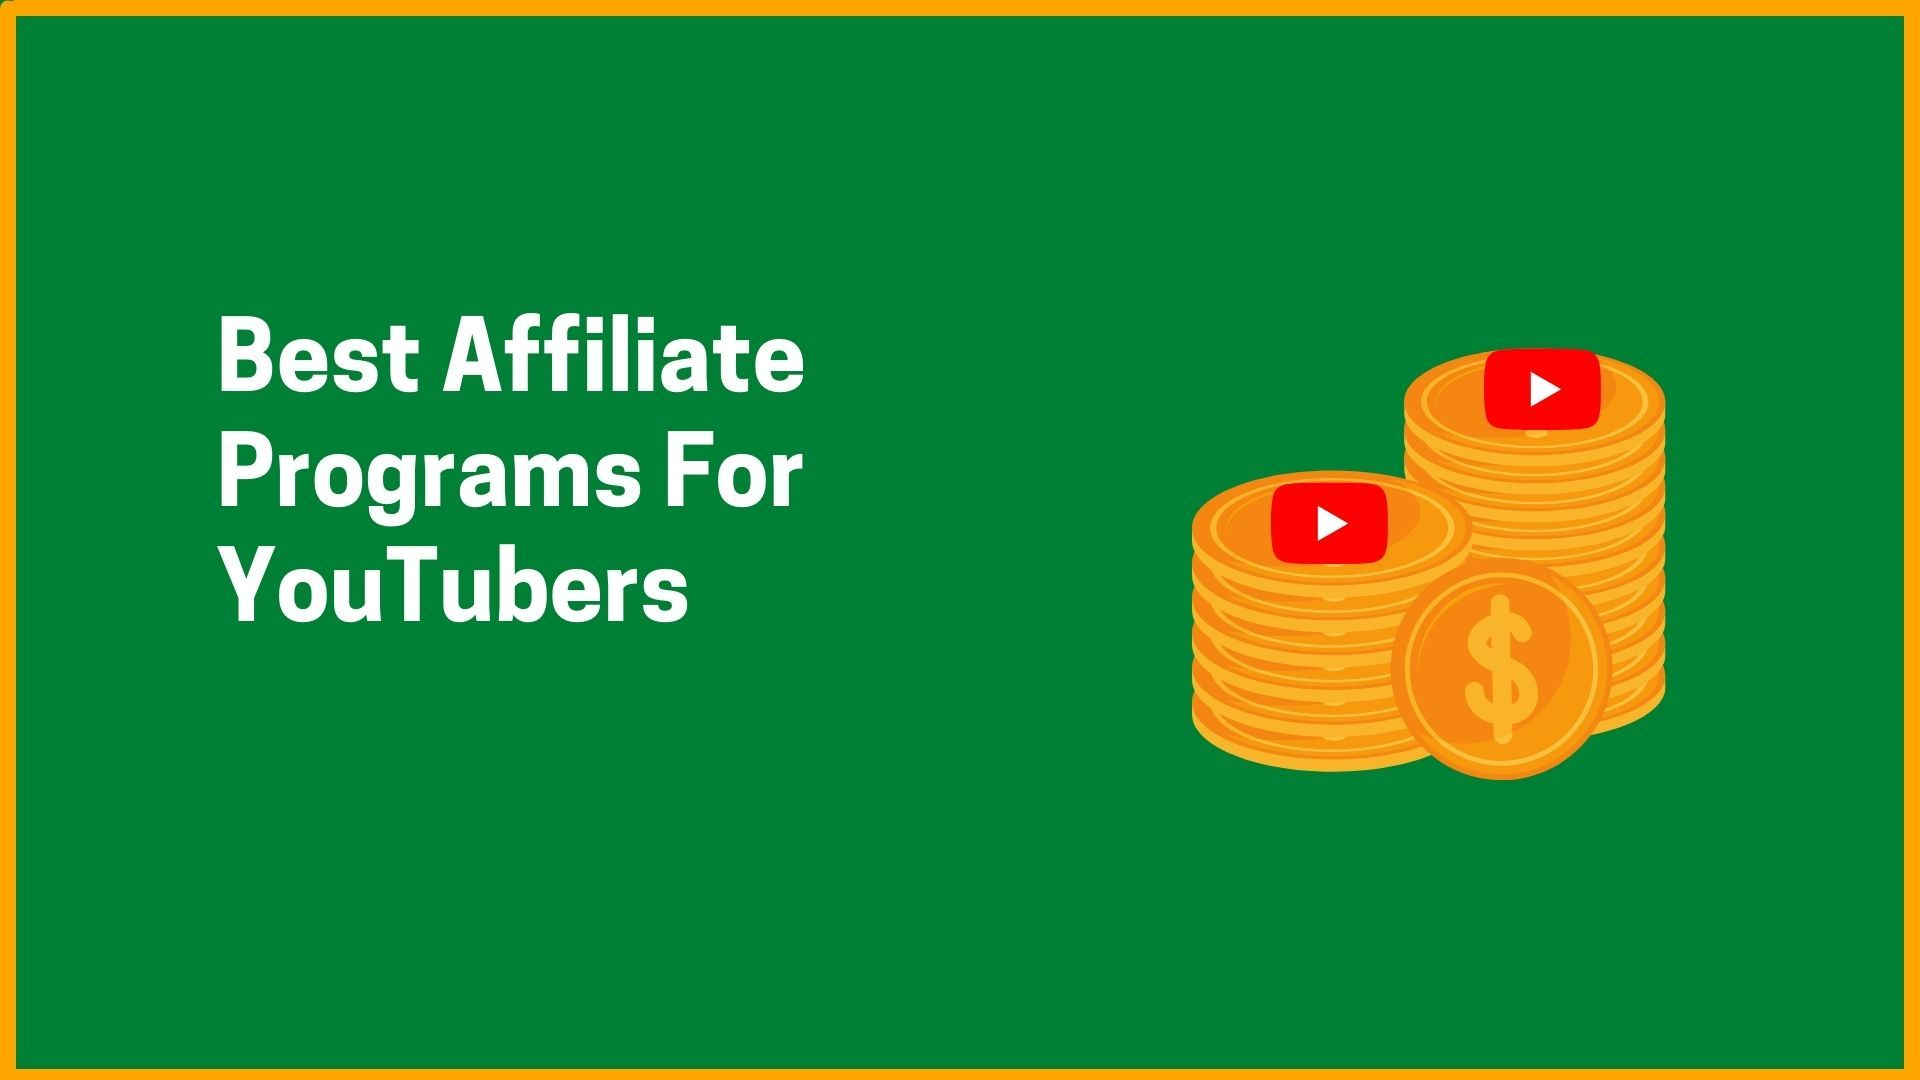 10 Best Affiliate Programs for YouTubers to Make Money in 2021